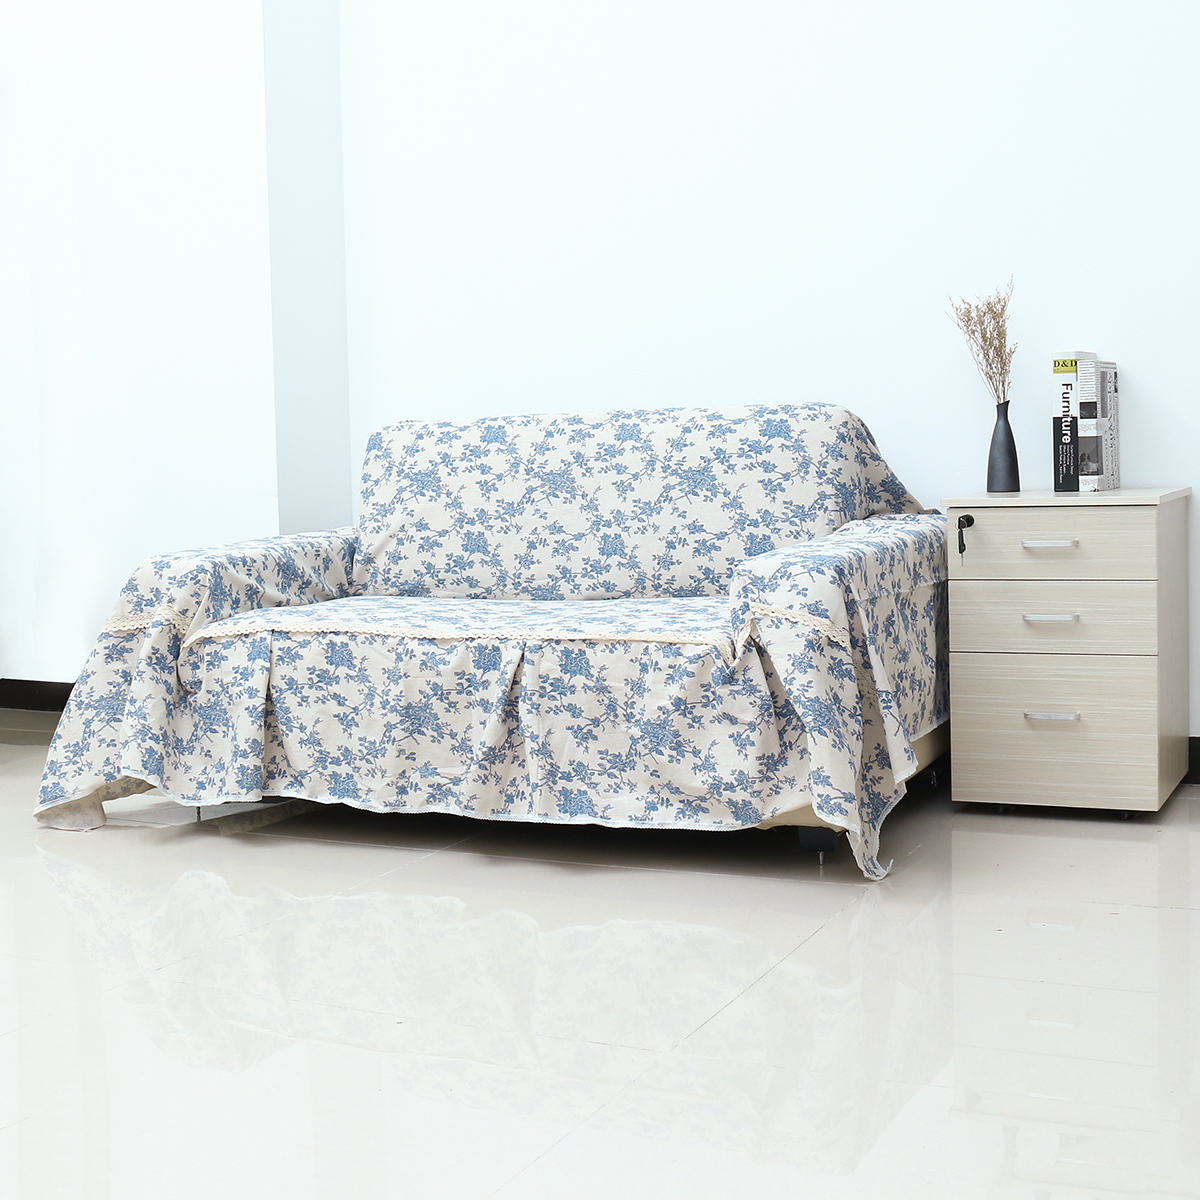 1 2 3 Seater Sofa Chair Covers Cotton Linen Furniture Protector Couch Towel Skirt Thick Fabric Universal Sofa Towel Cover